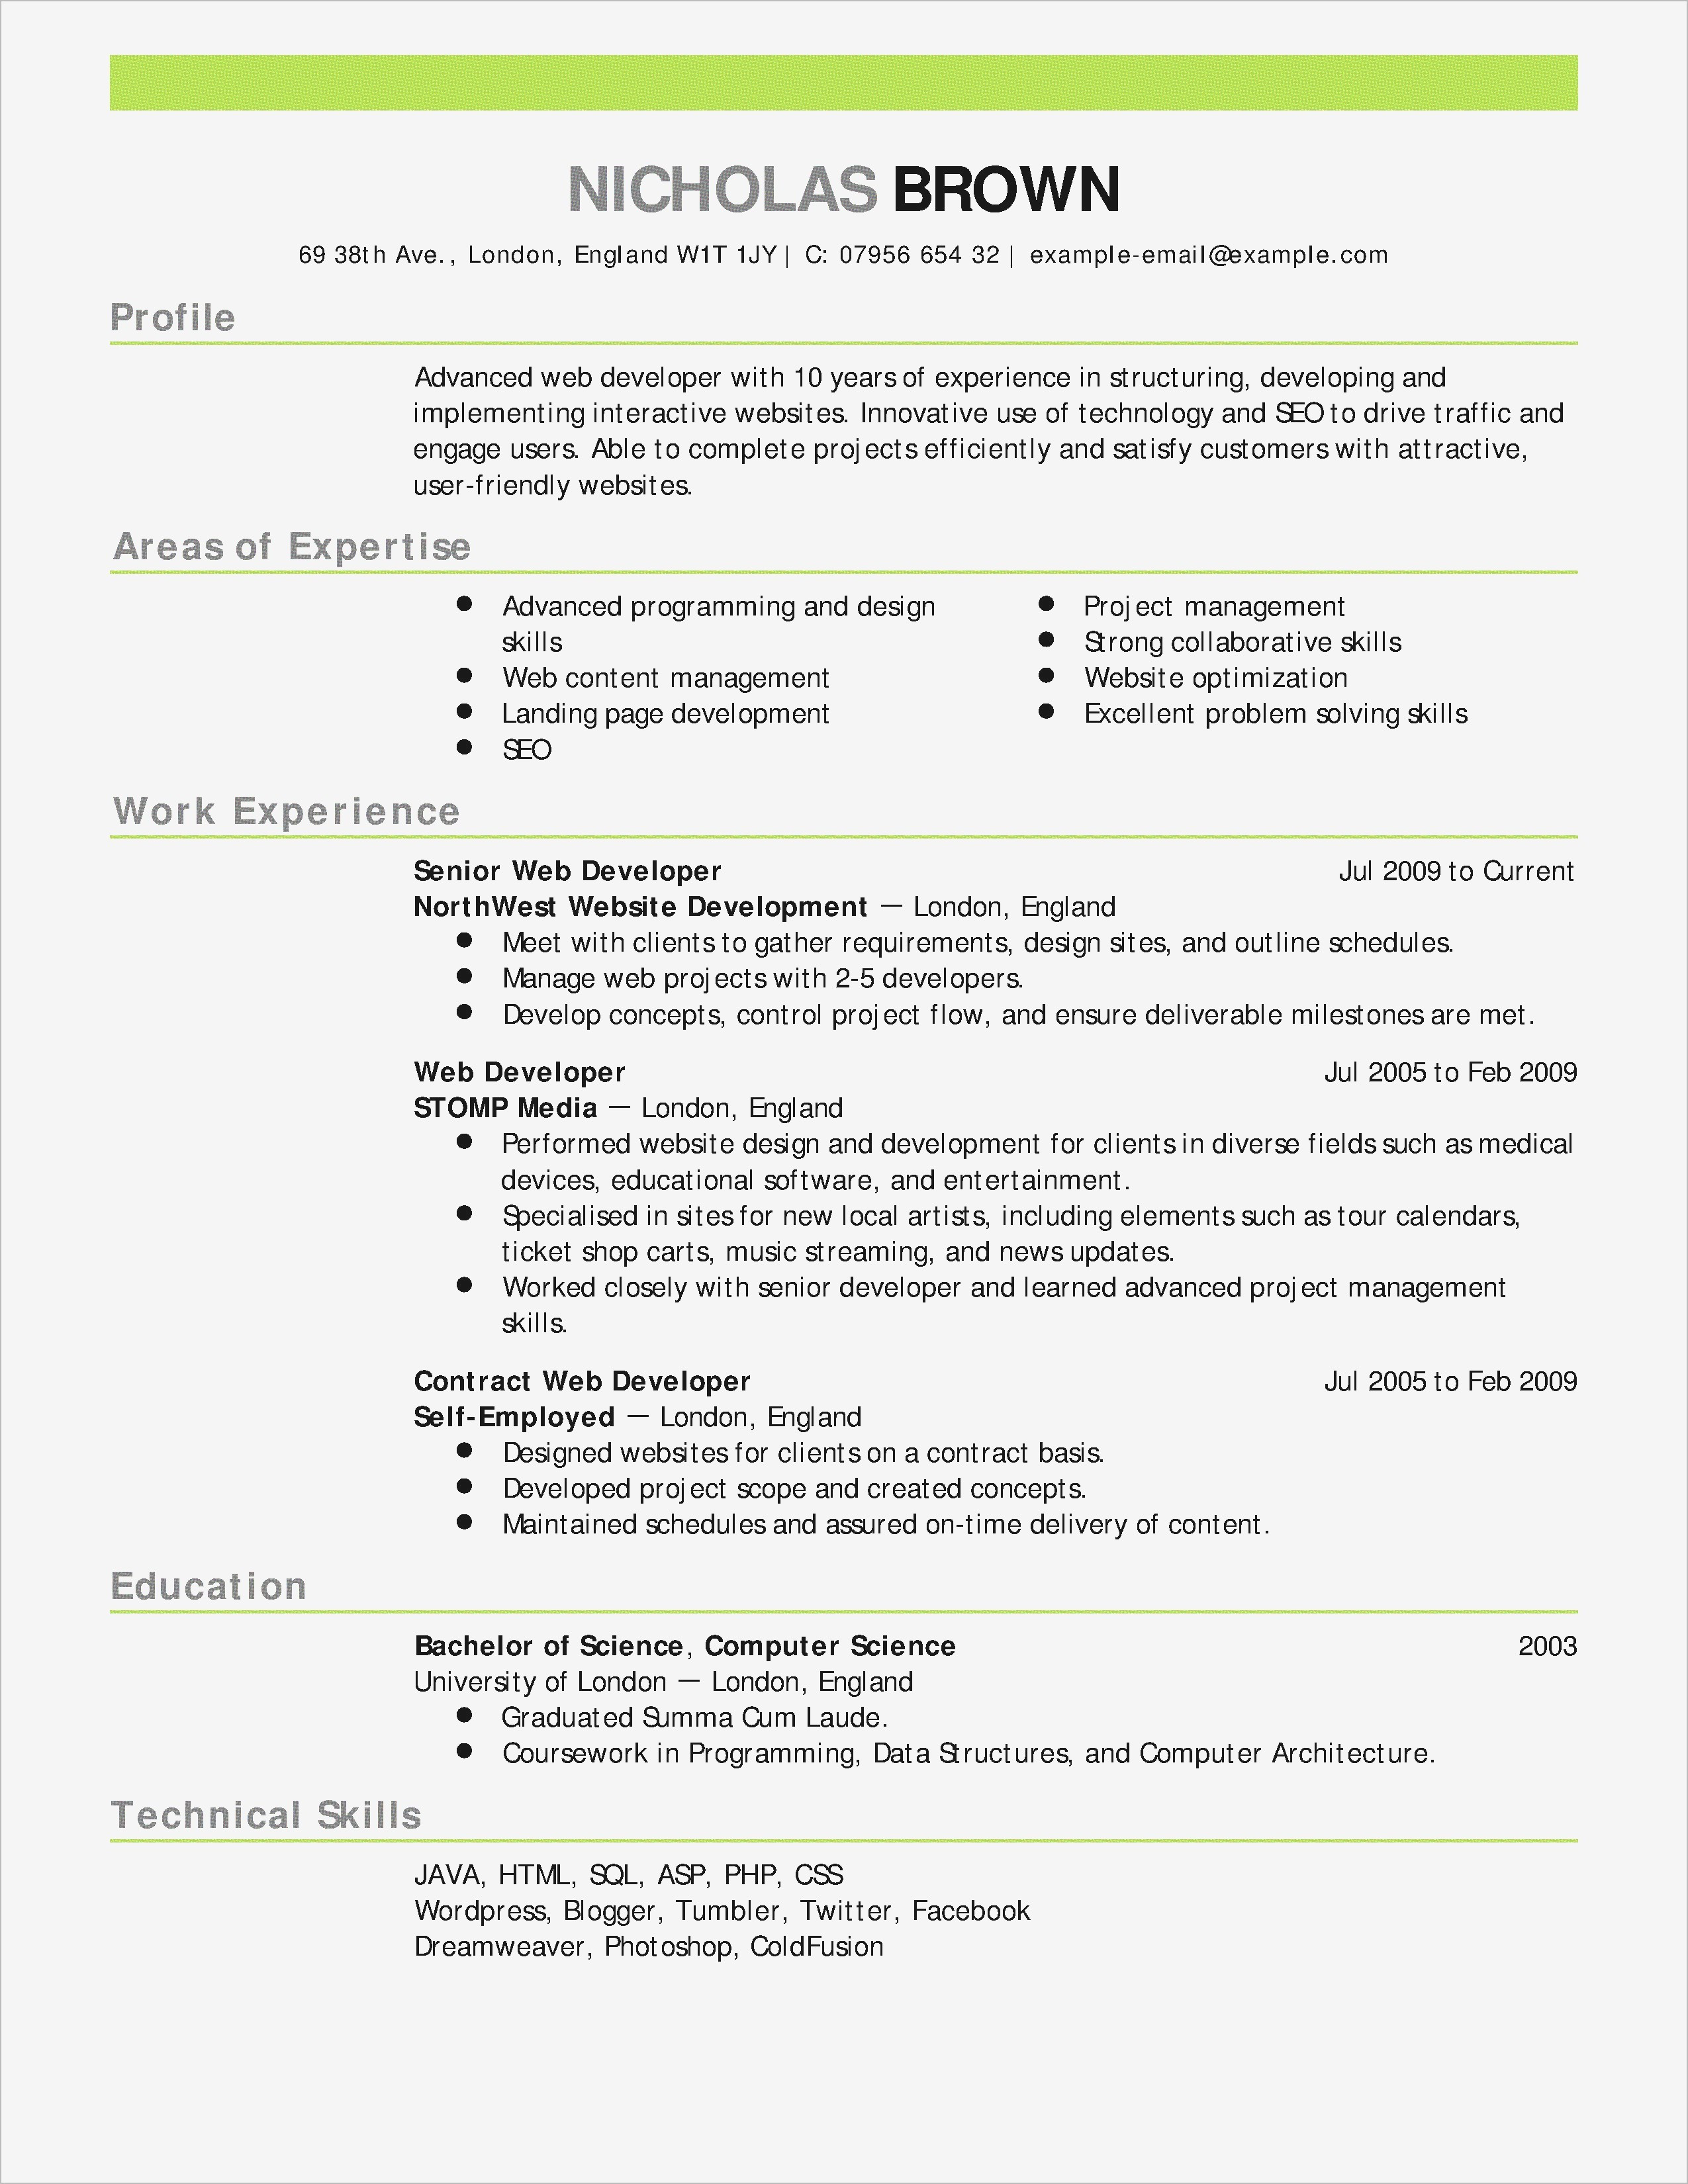 resume and cover letter template Collection-maintenance cover letter template maintenance experience resume reference elegant cover letter writing service awesome paralegal resume 0d 6g 7-s